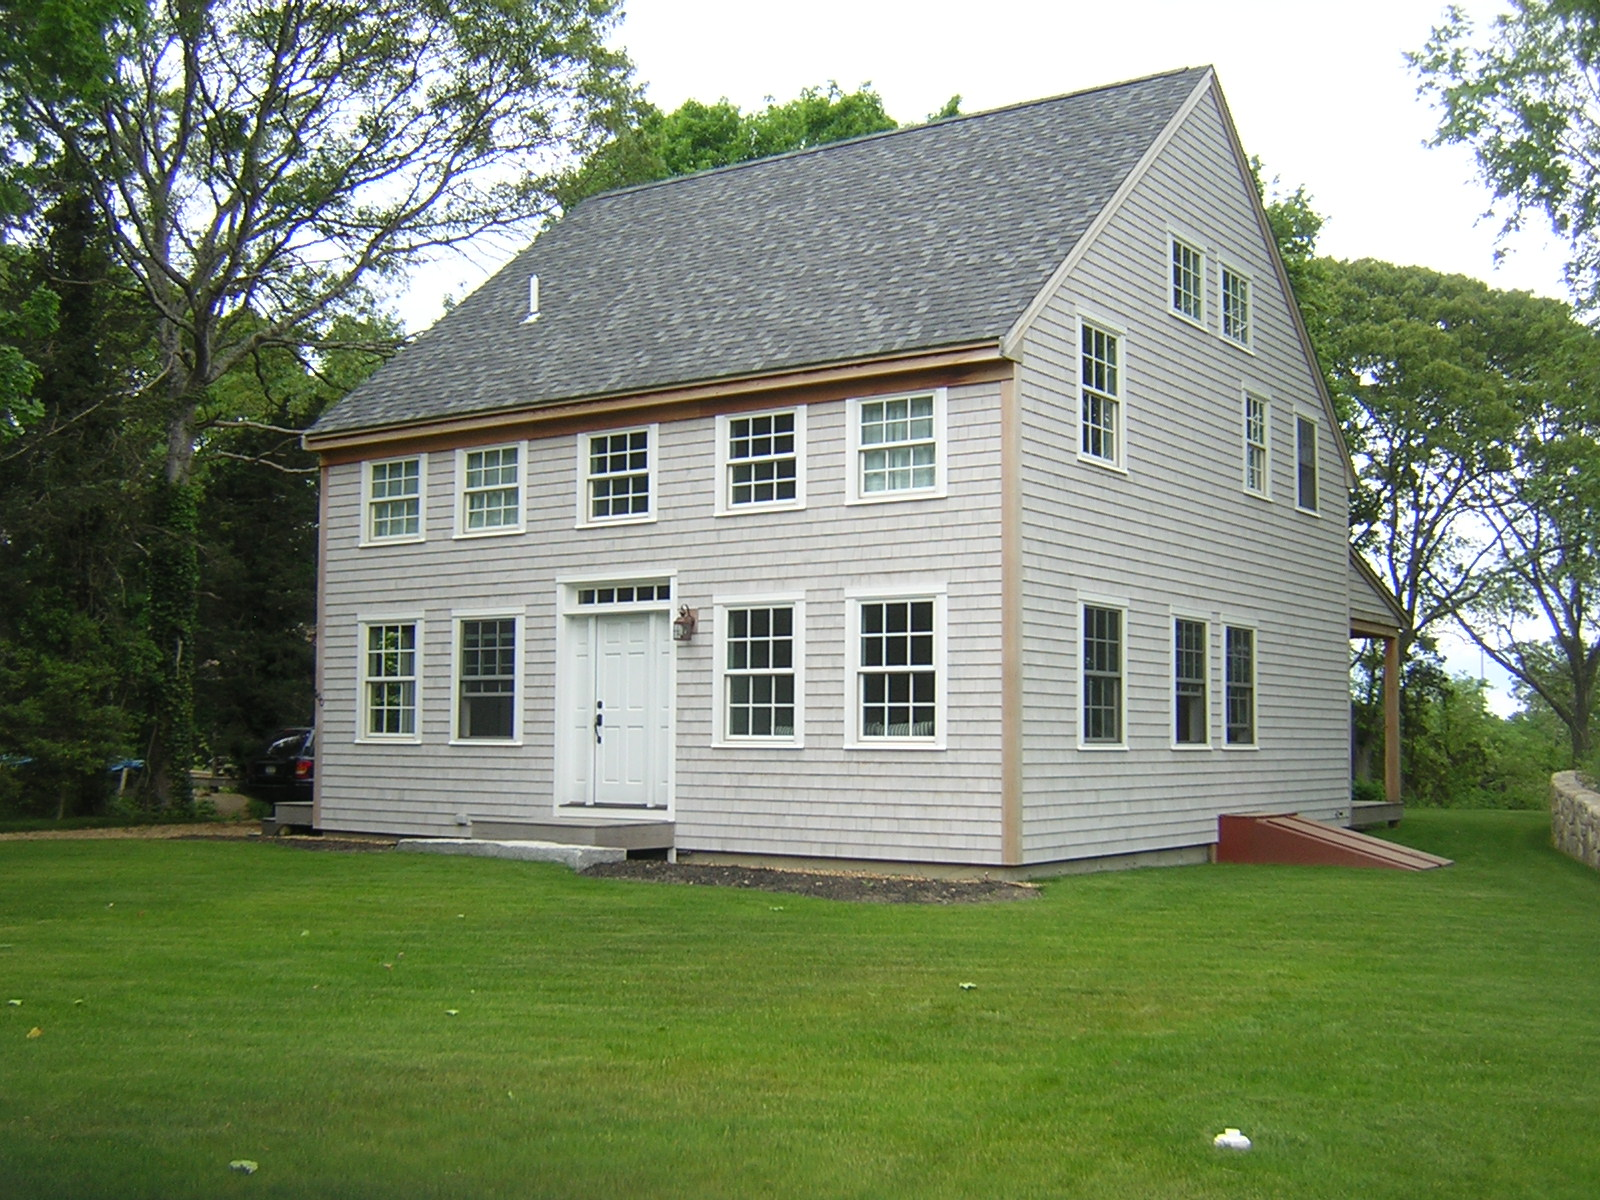 Best woodworking project post and beam home plans floor for Small colonial home plans